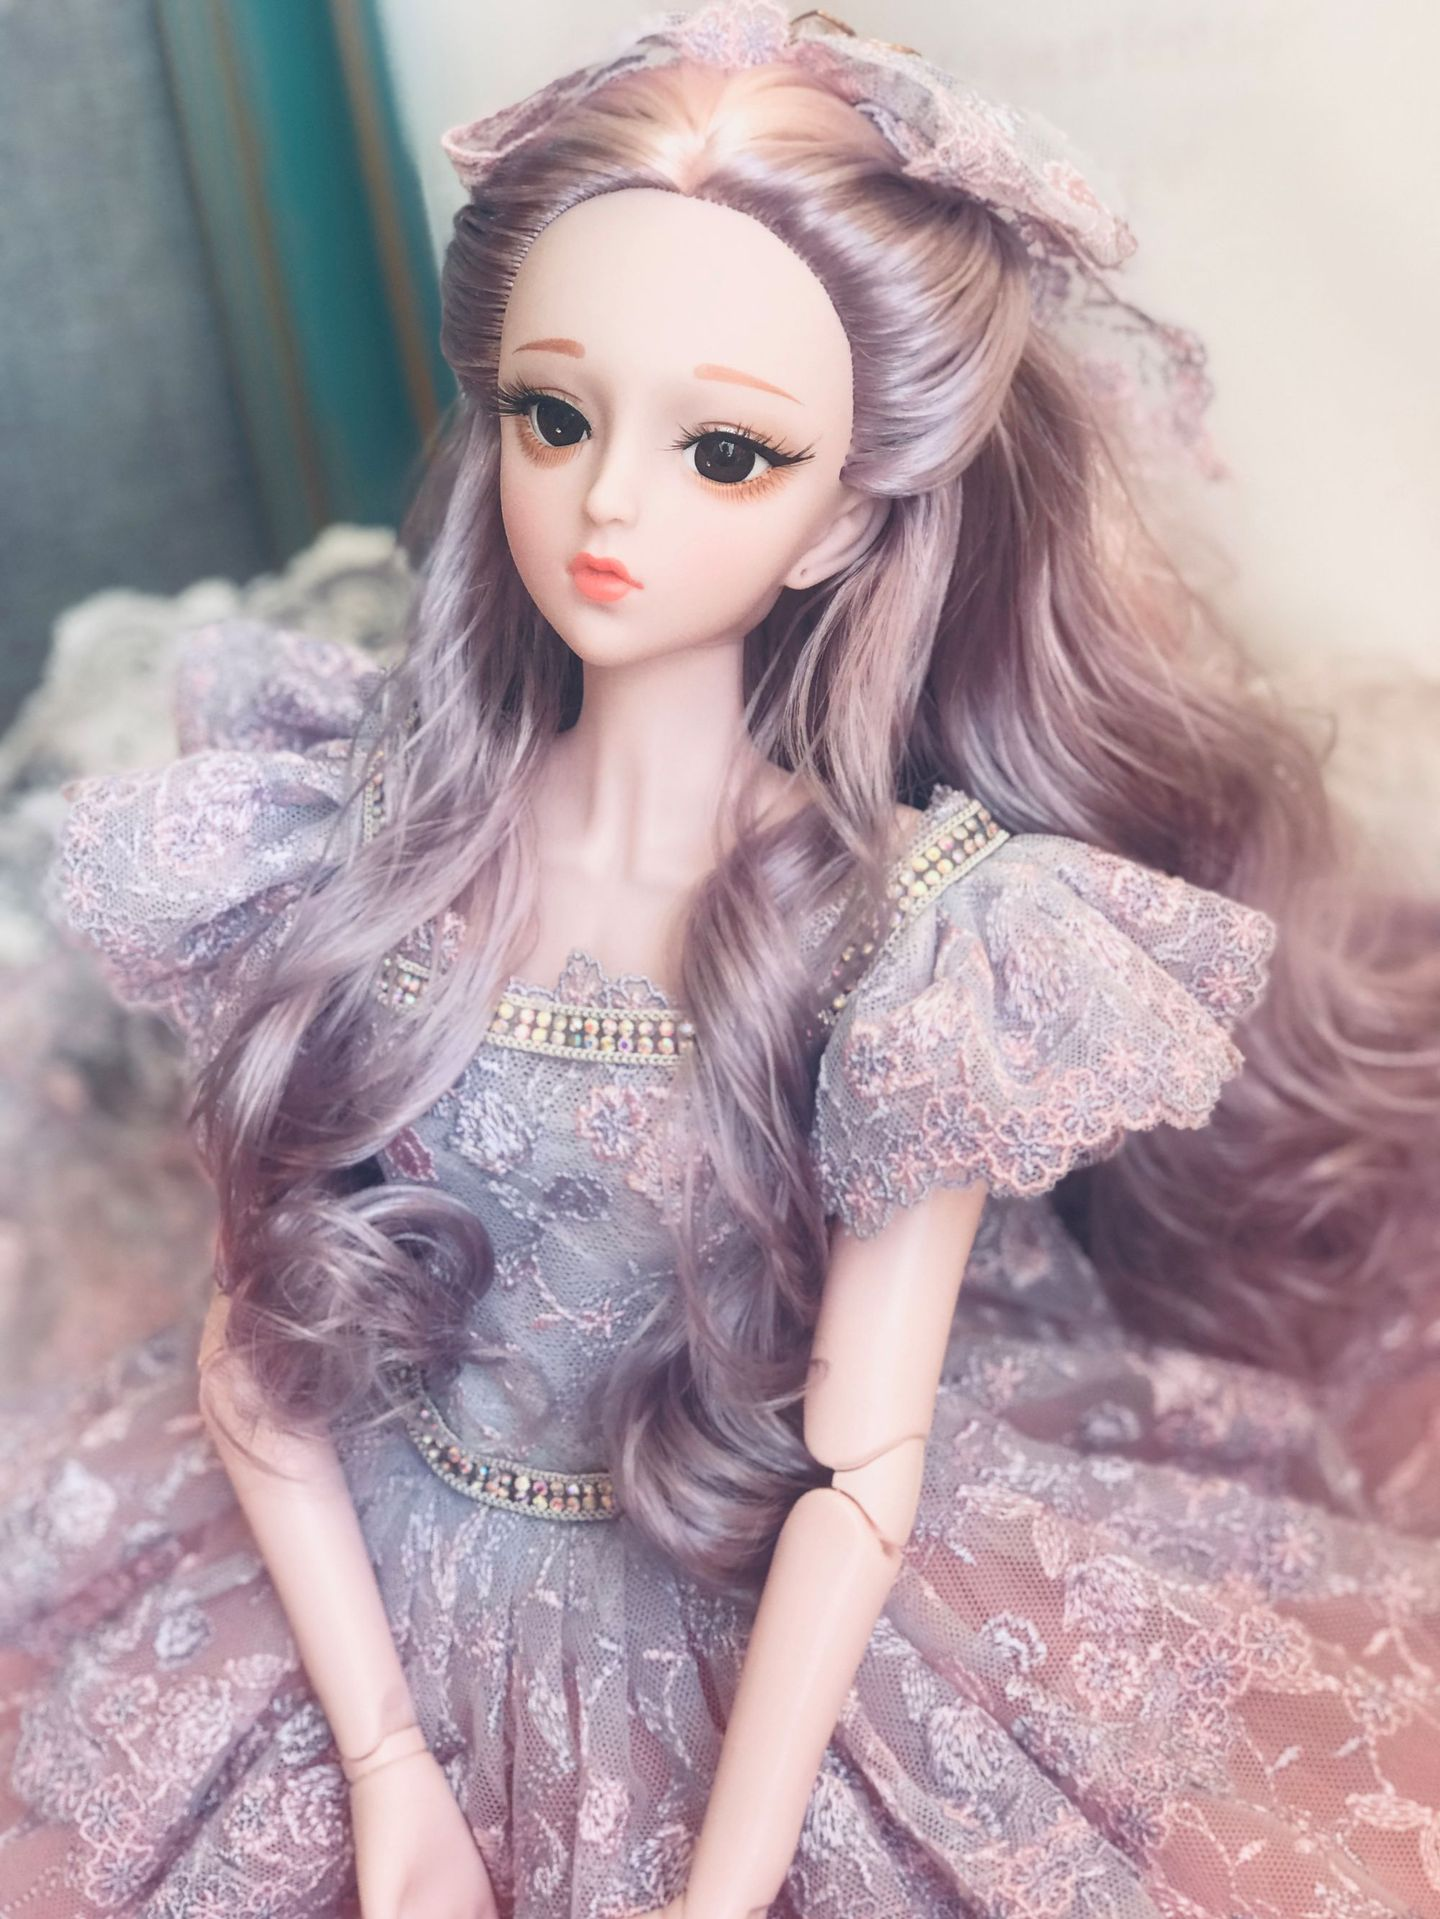 Long Wig BJD Doll 60cm Naked Doll 3D Eyes 23 Movable Jointed  Plastic Body Beautiful DIY Doll Accessories Toys For Girls Gift